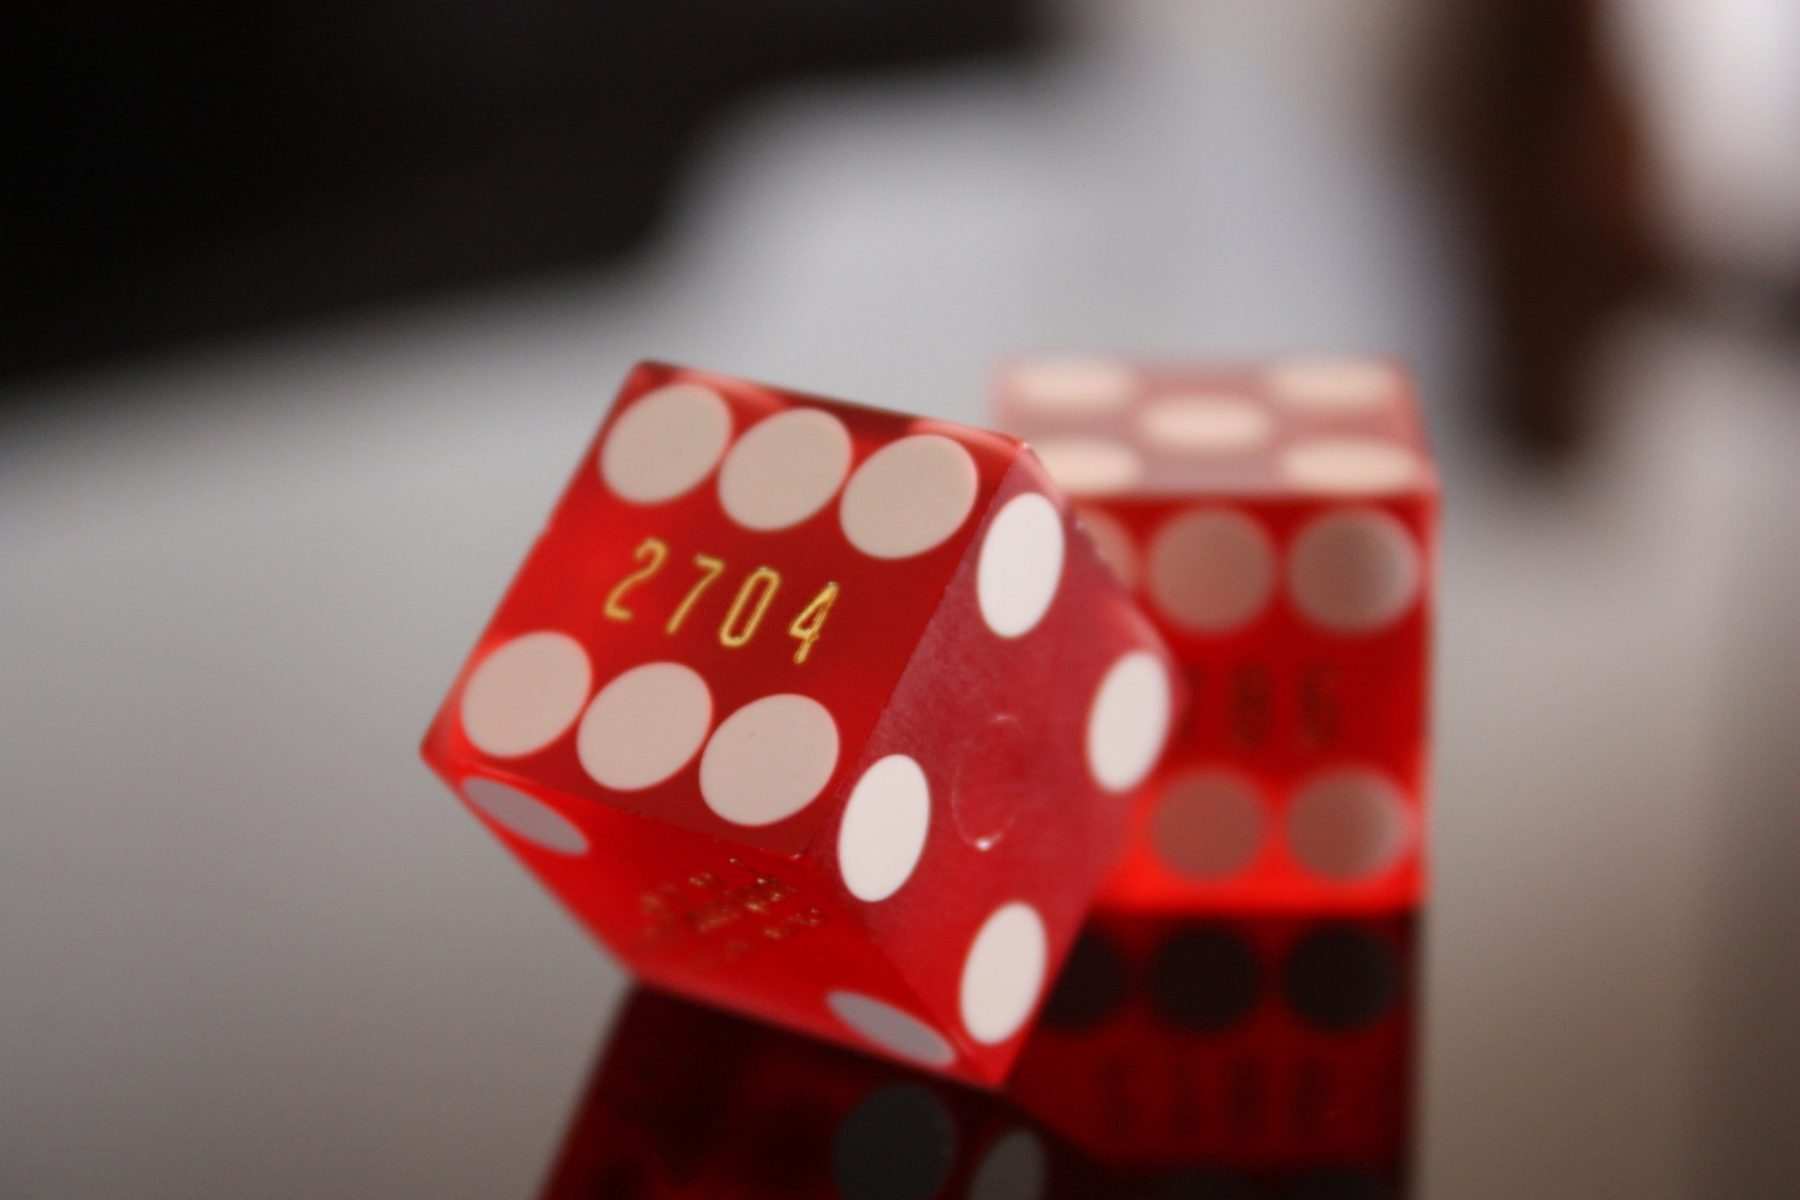 picture of dice in article about online casinos